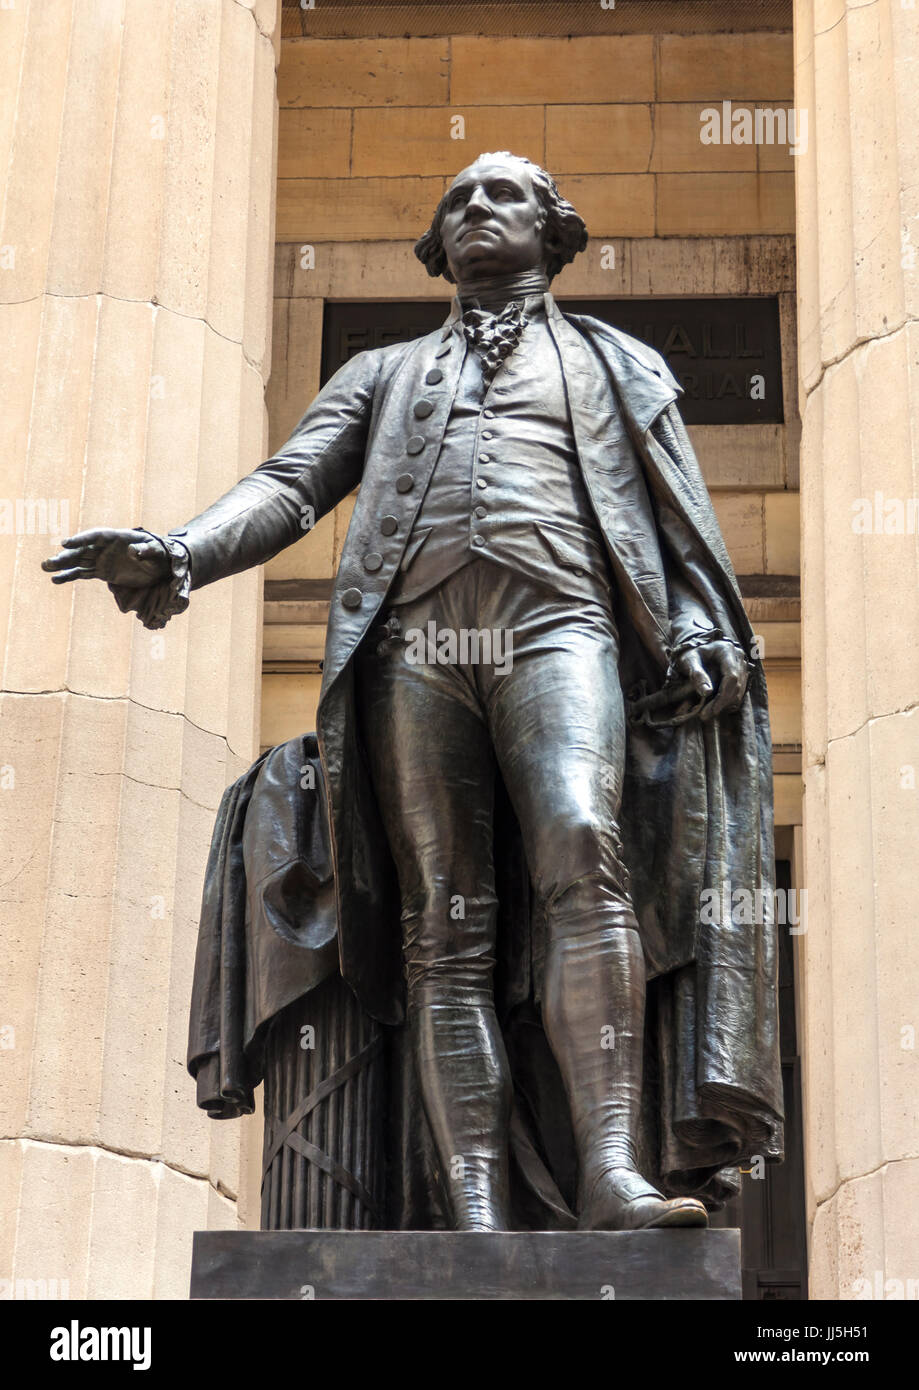 Statue of George Washington outside the Federal Hall National Memorial in New York was created by John Quincy Adams - Stock Image